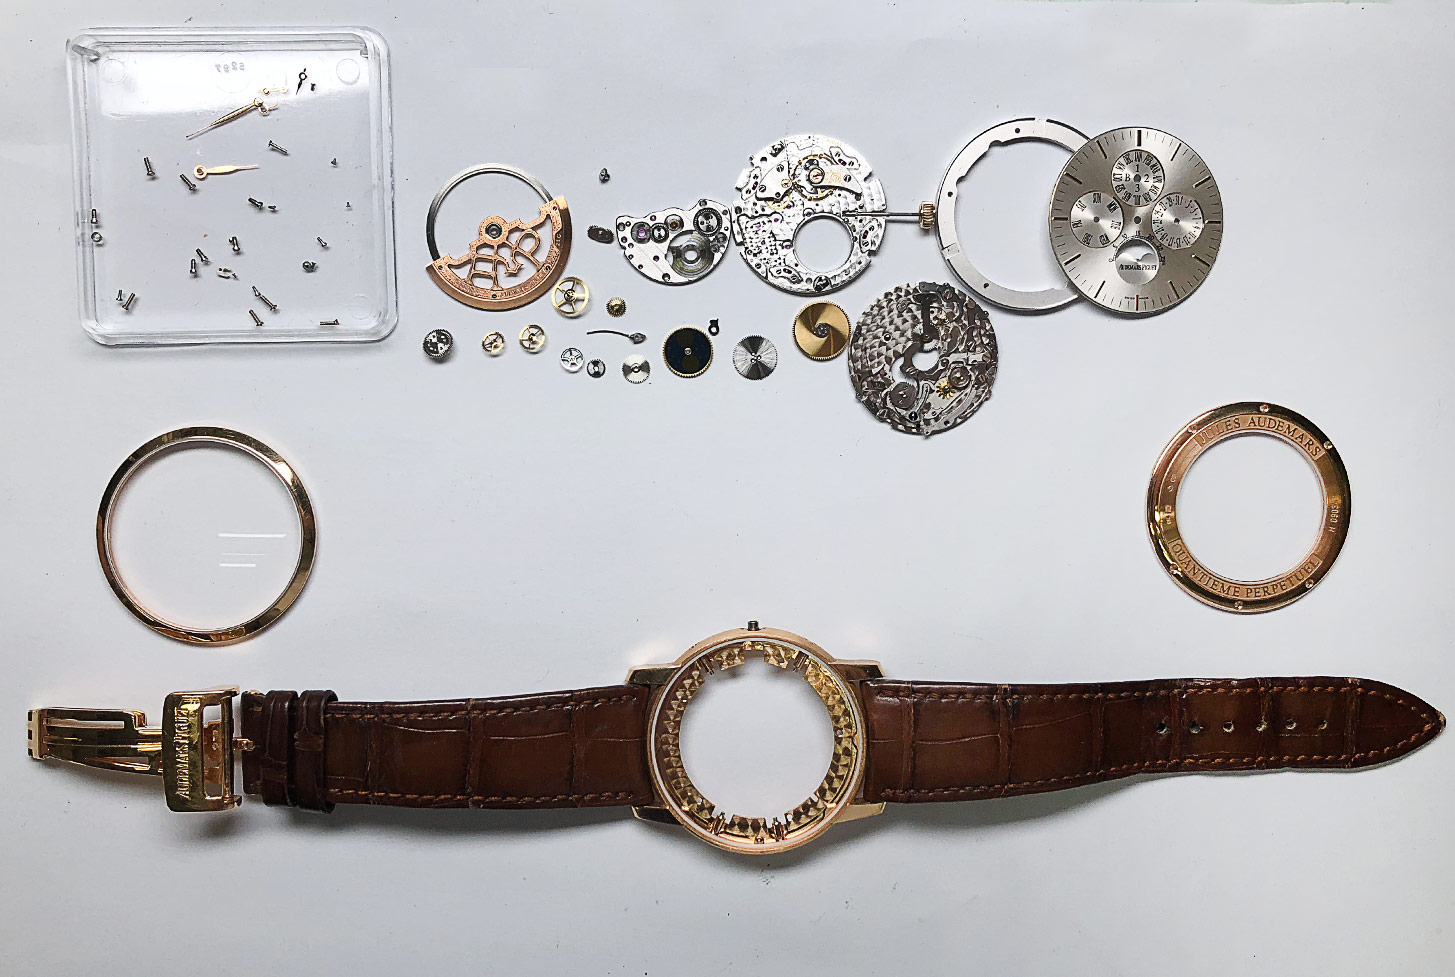 Audemars Piguet Watch Repair